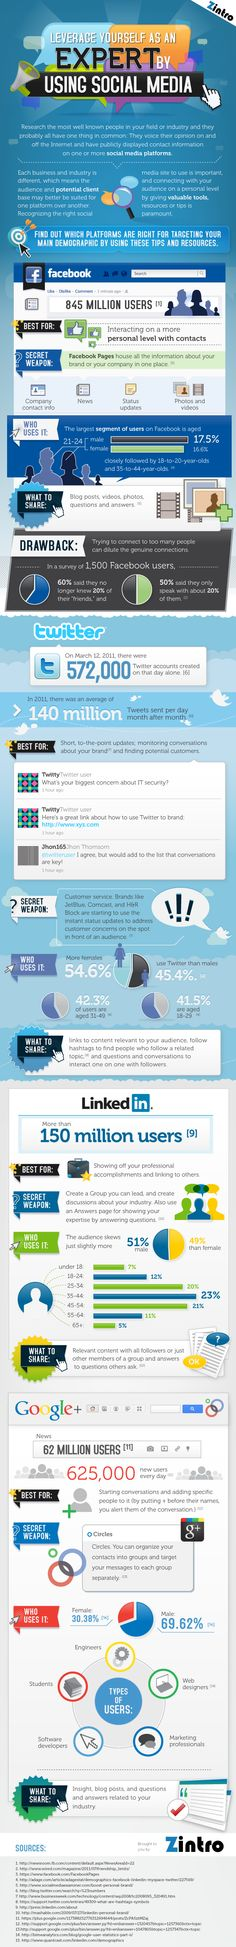 Do you want to know which Social Network is more effective? What are the strategies you should adopt while selecting different Social Networks for your different marketing purposes? Check out this Cool new Infographic. Marketing Digital, Business Marketing, Internet Marketing, Online Marketing, Social Media Marketing, Content Marketing, Web Internet, Business Infographics, Social Business